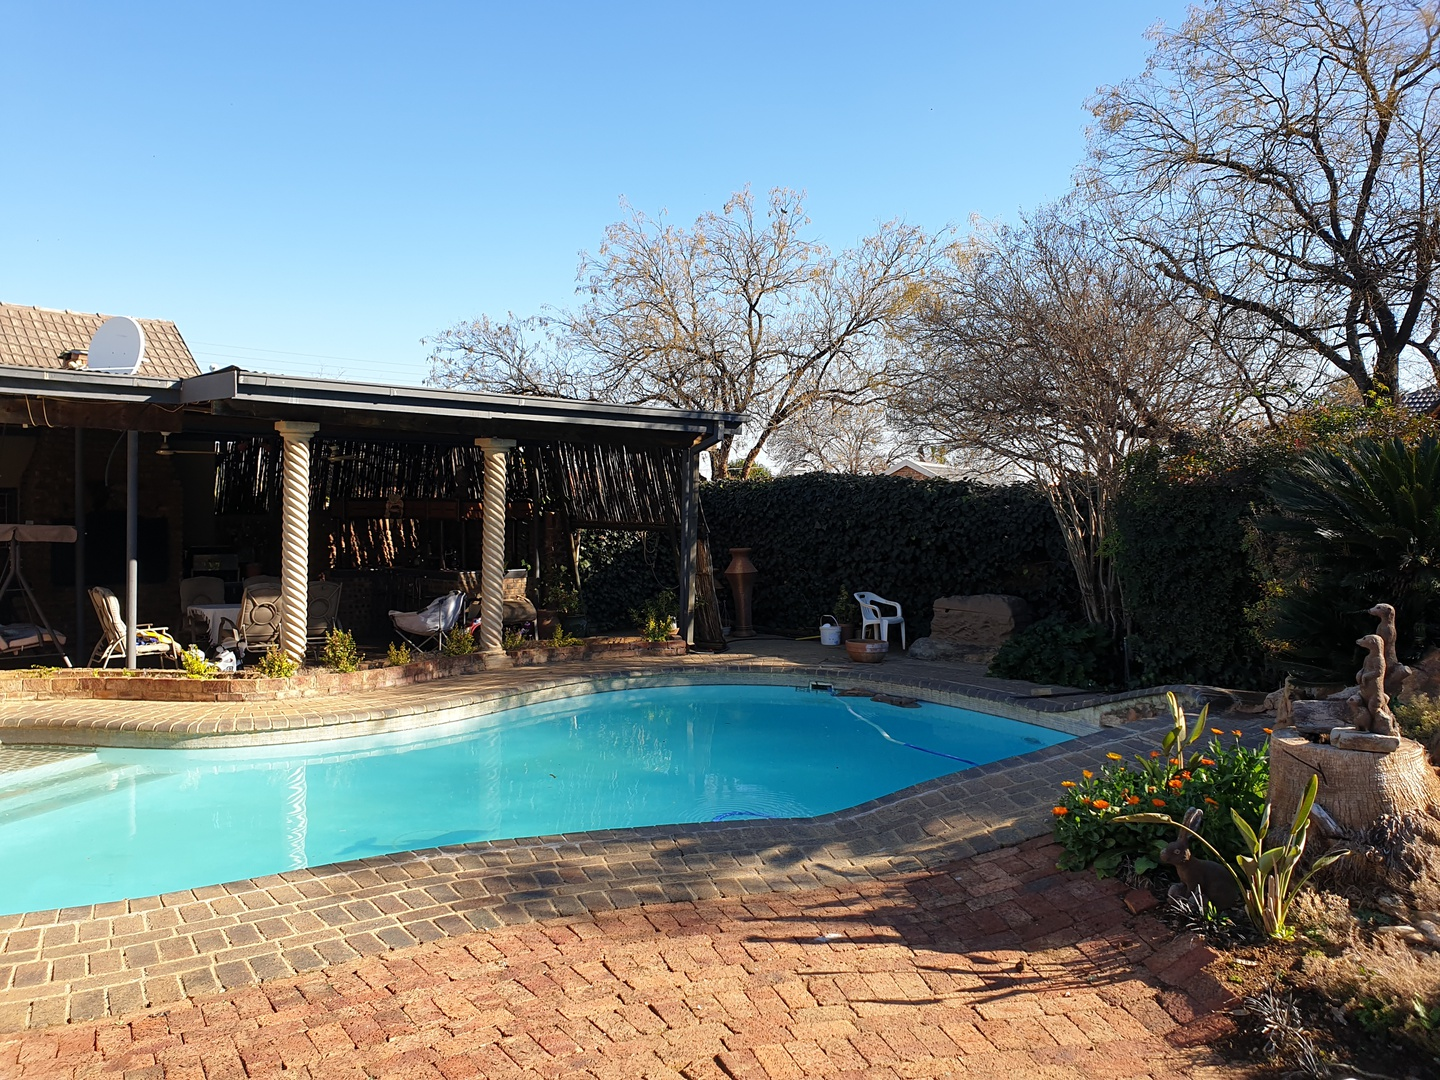 House in Bailliepark - Entertainment area/swimming pool